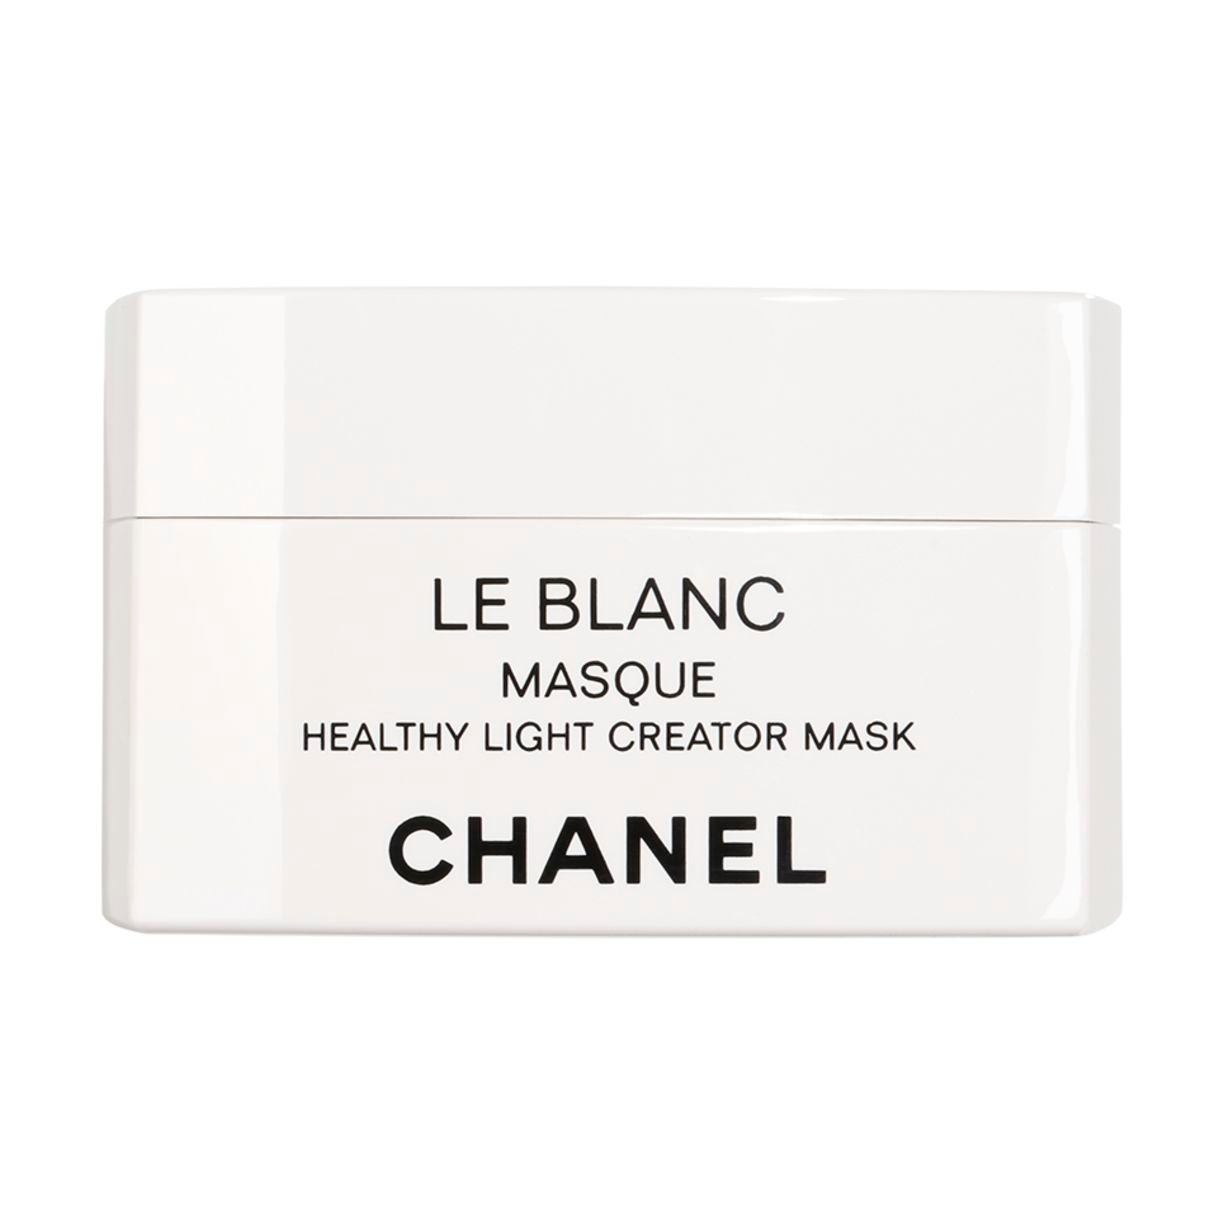 LE BLANC MASQUE HEALTHY LIGHT CREATOR MASK REVITALISANT - ILLUMINATEUR - RÉPARATEUR 50g